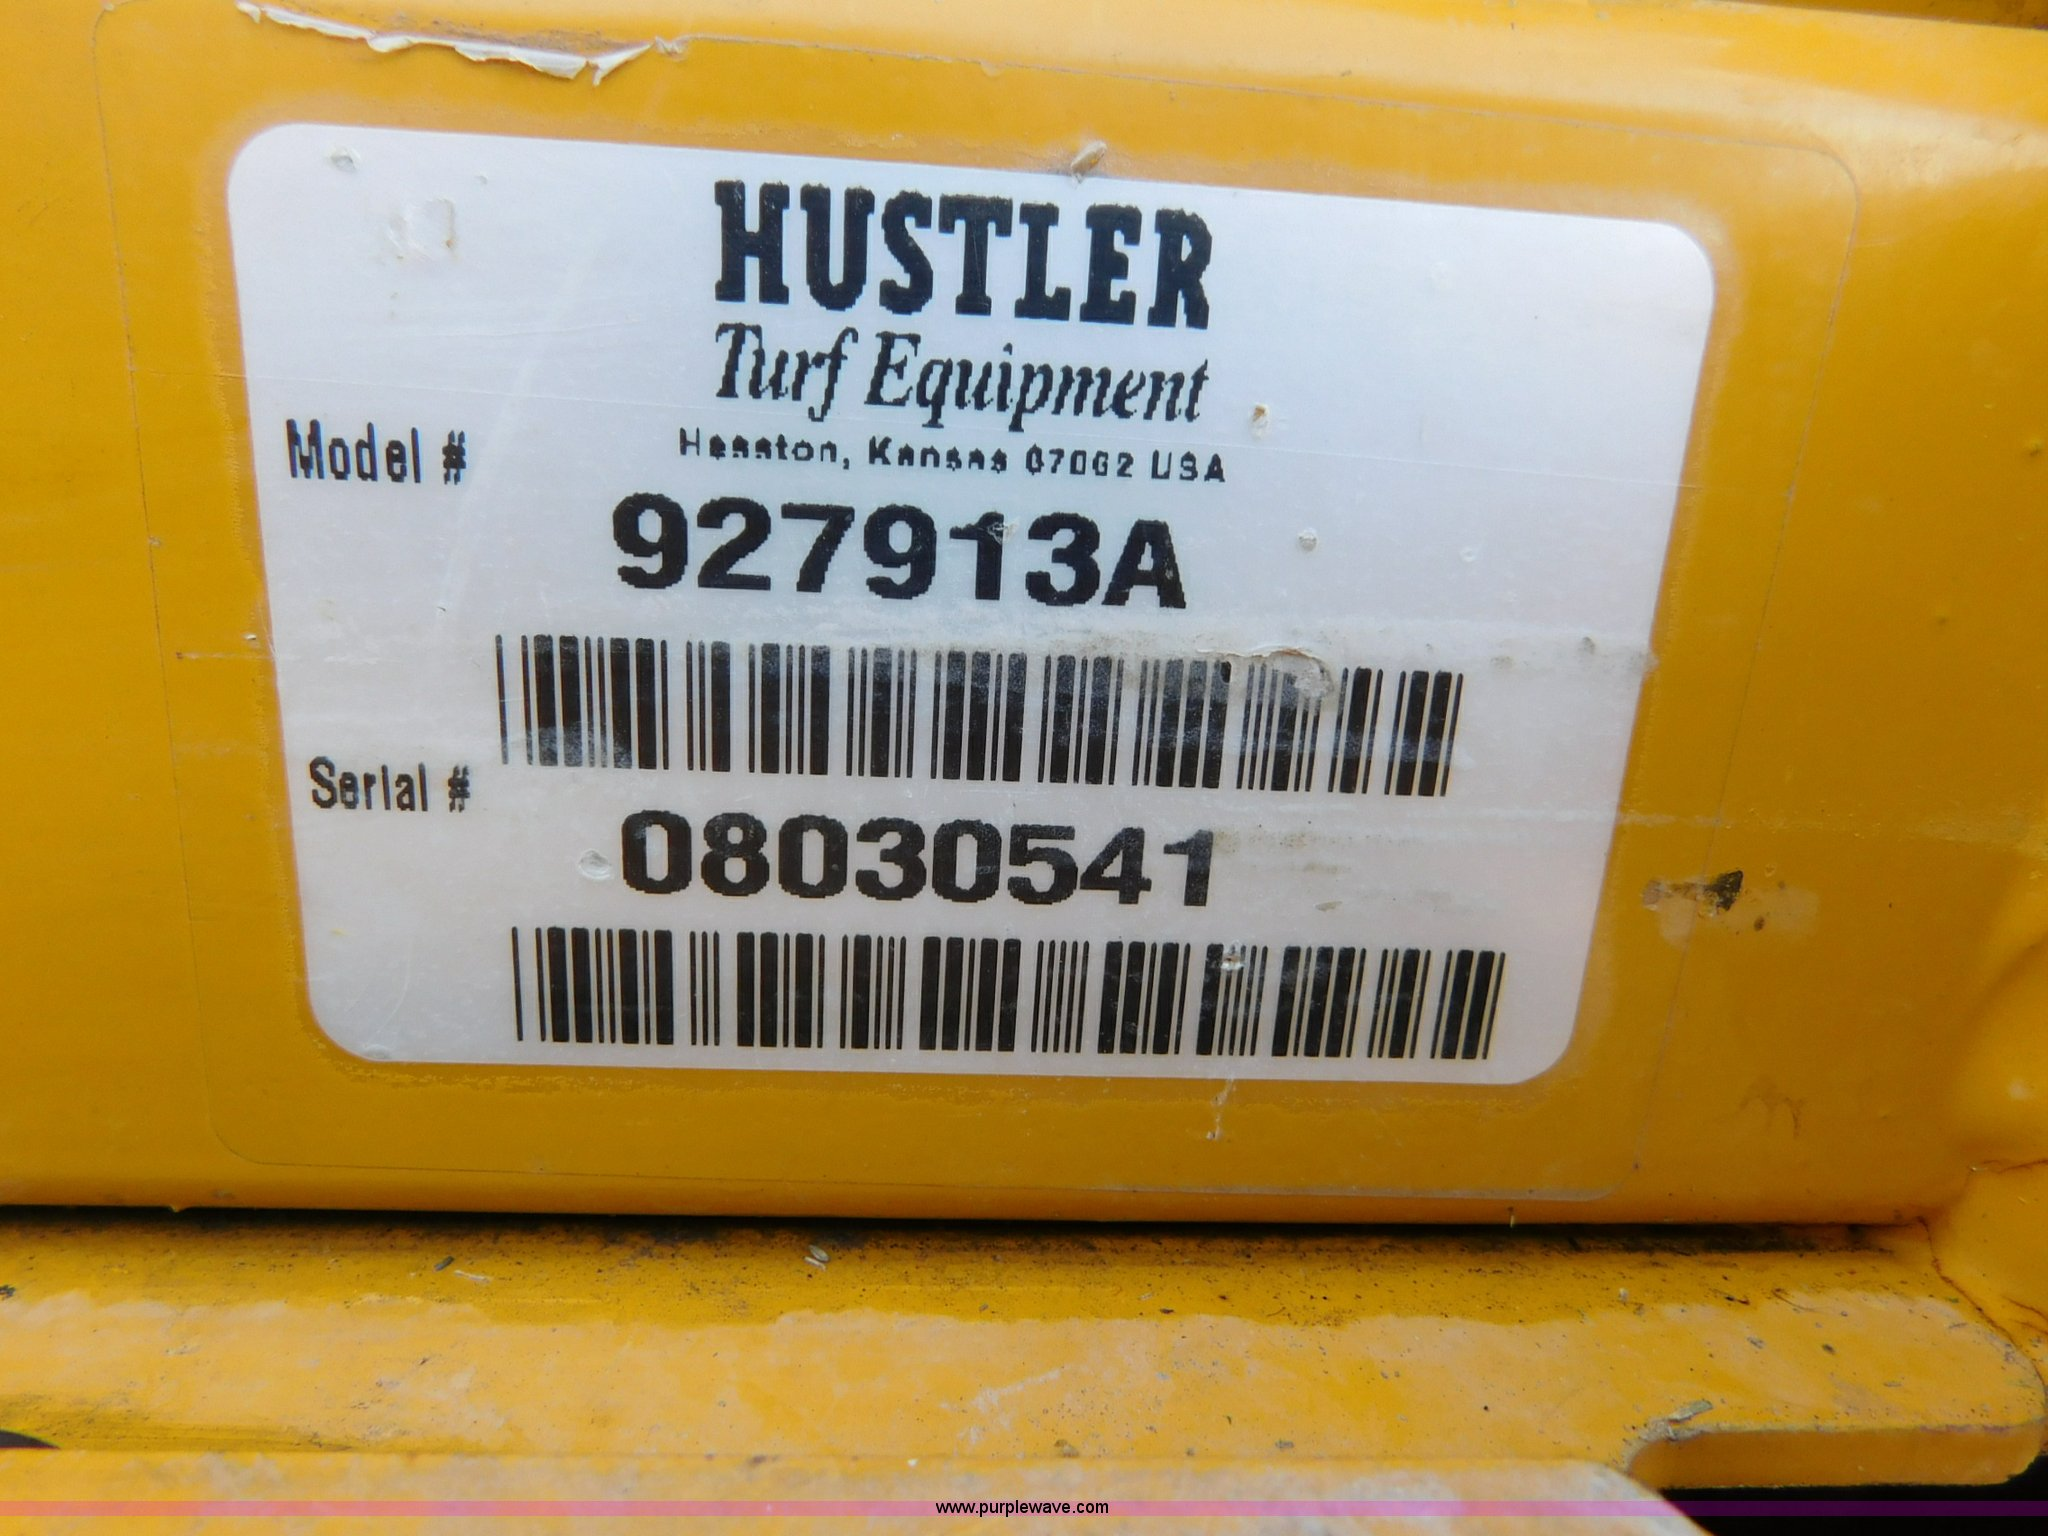 Not meaningful. Hustler registration code crack